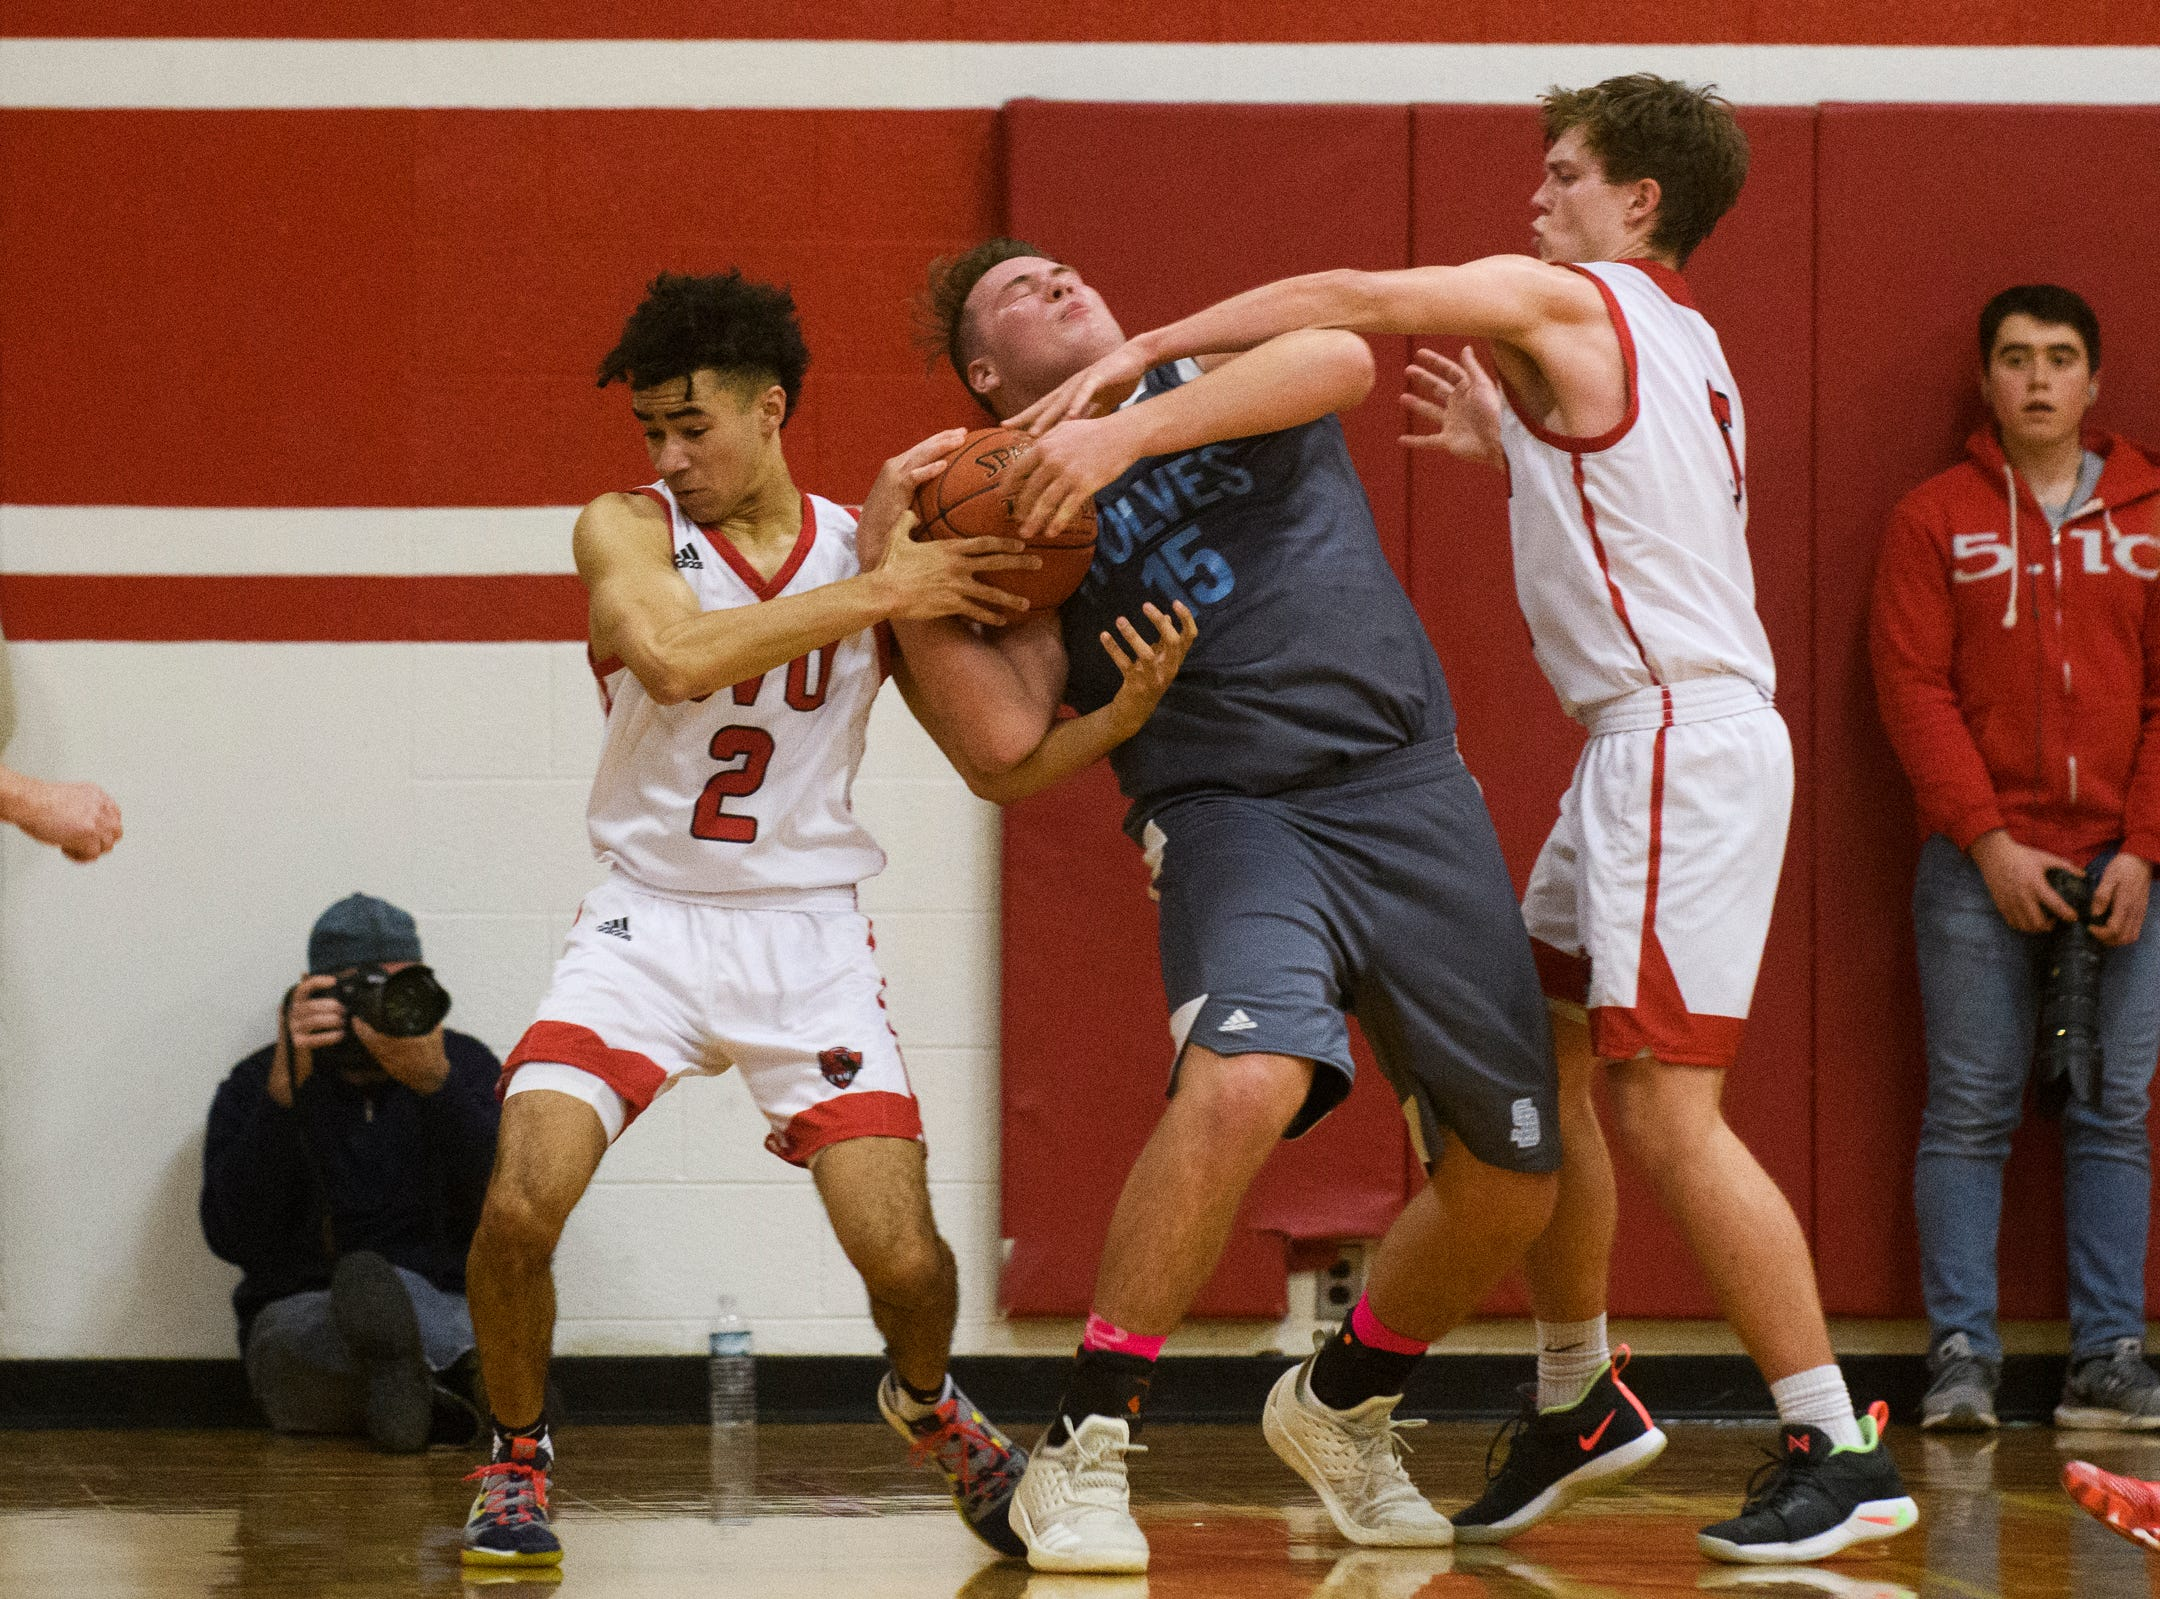 South Burlington's Owen MacDonough (15) battles for the ball with CVU's Noah Martin (2) and Ethan Harvey (5) during the boys basketball game between he South Burlington Wolves and the Champlain Valley Union Redhawks at CVU High School on Tuesday night March 5, 2019 in Hinesburg, Vermont.